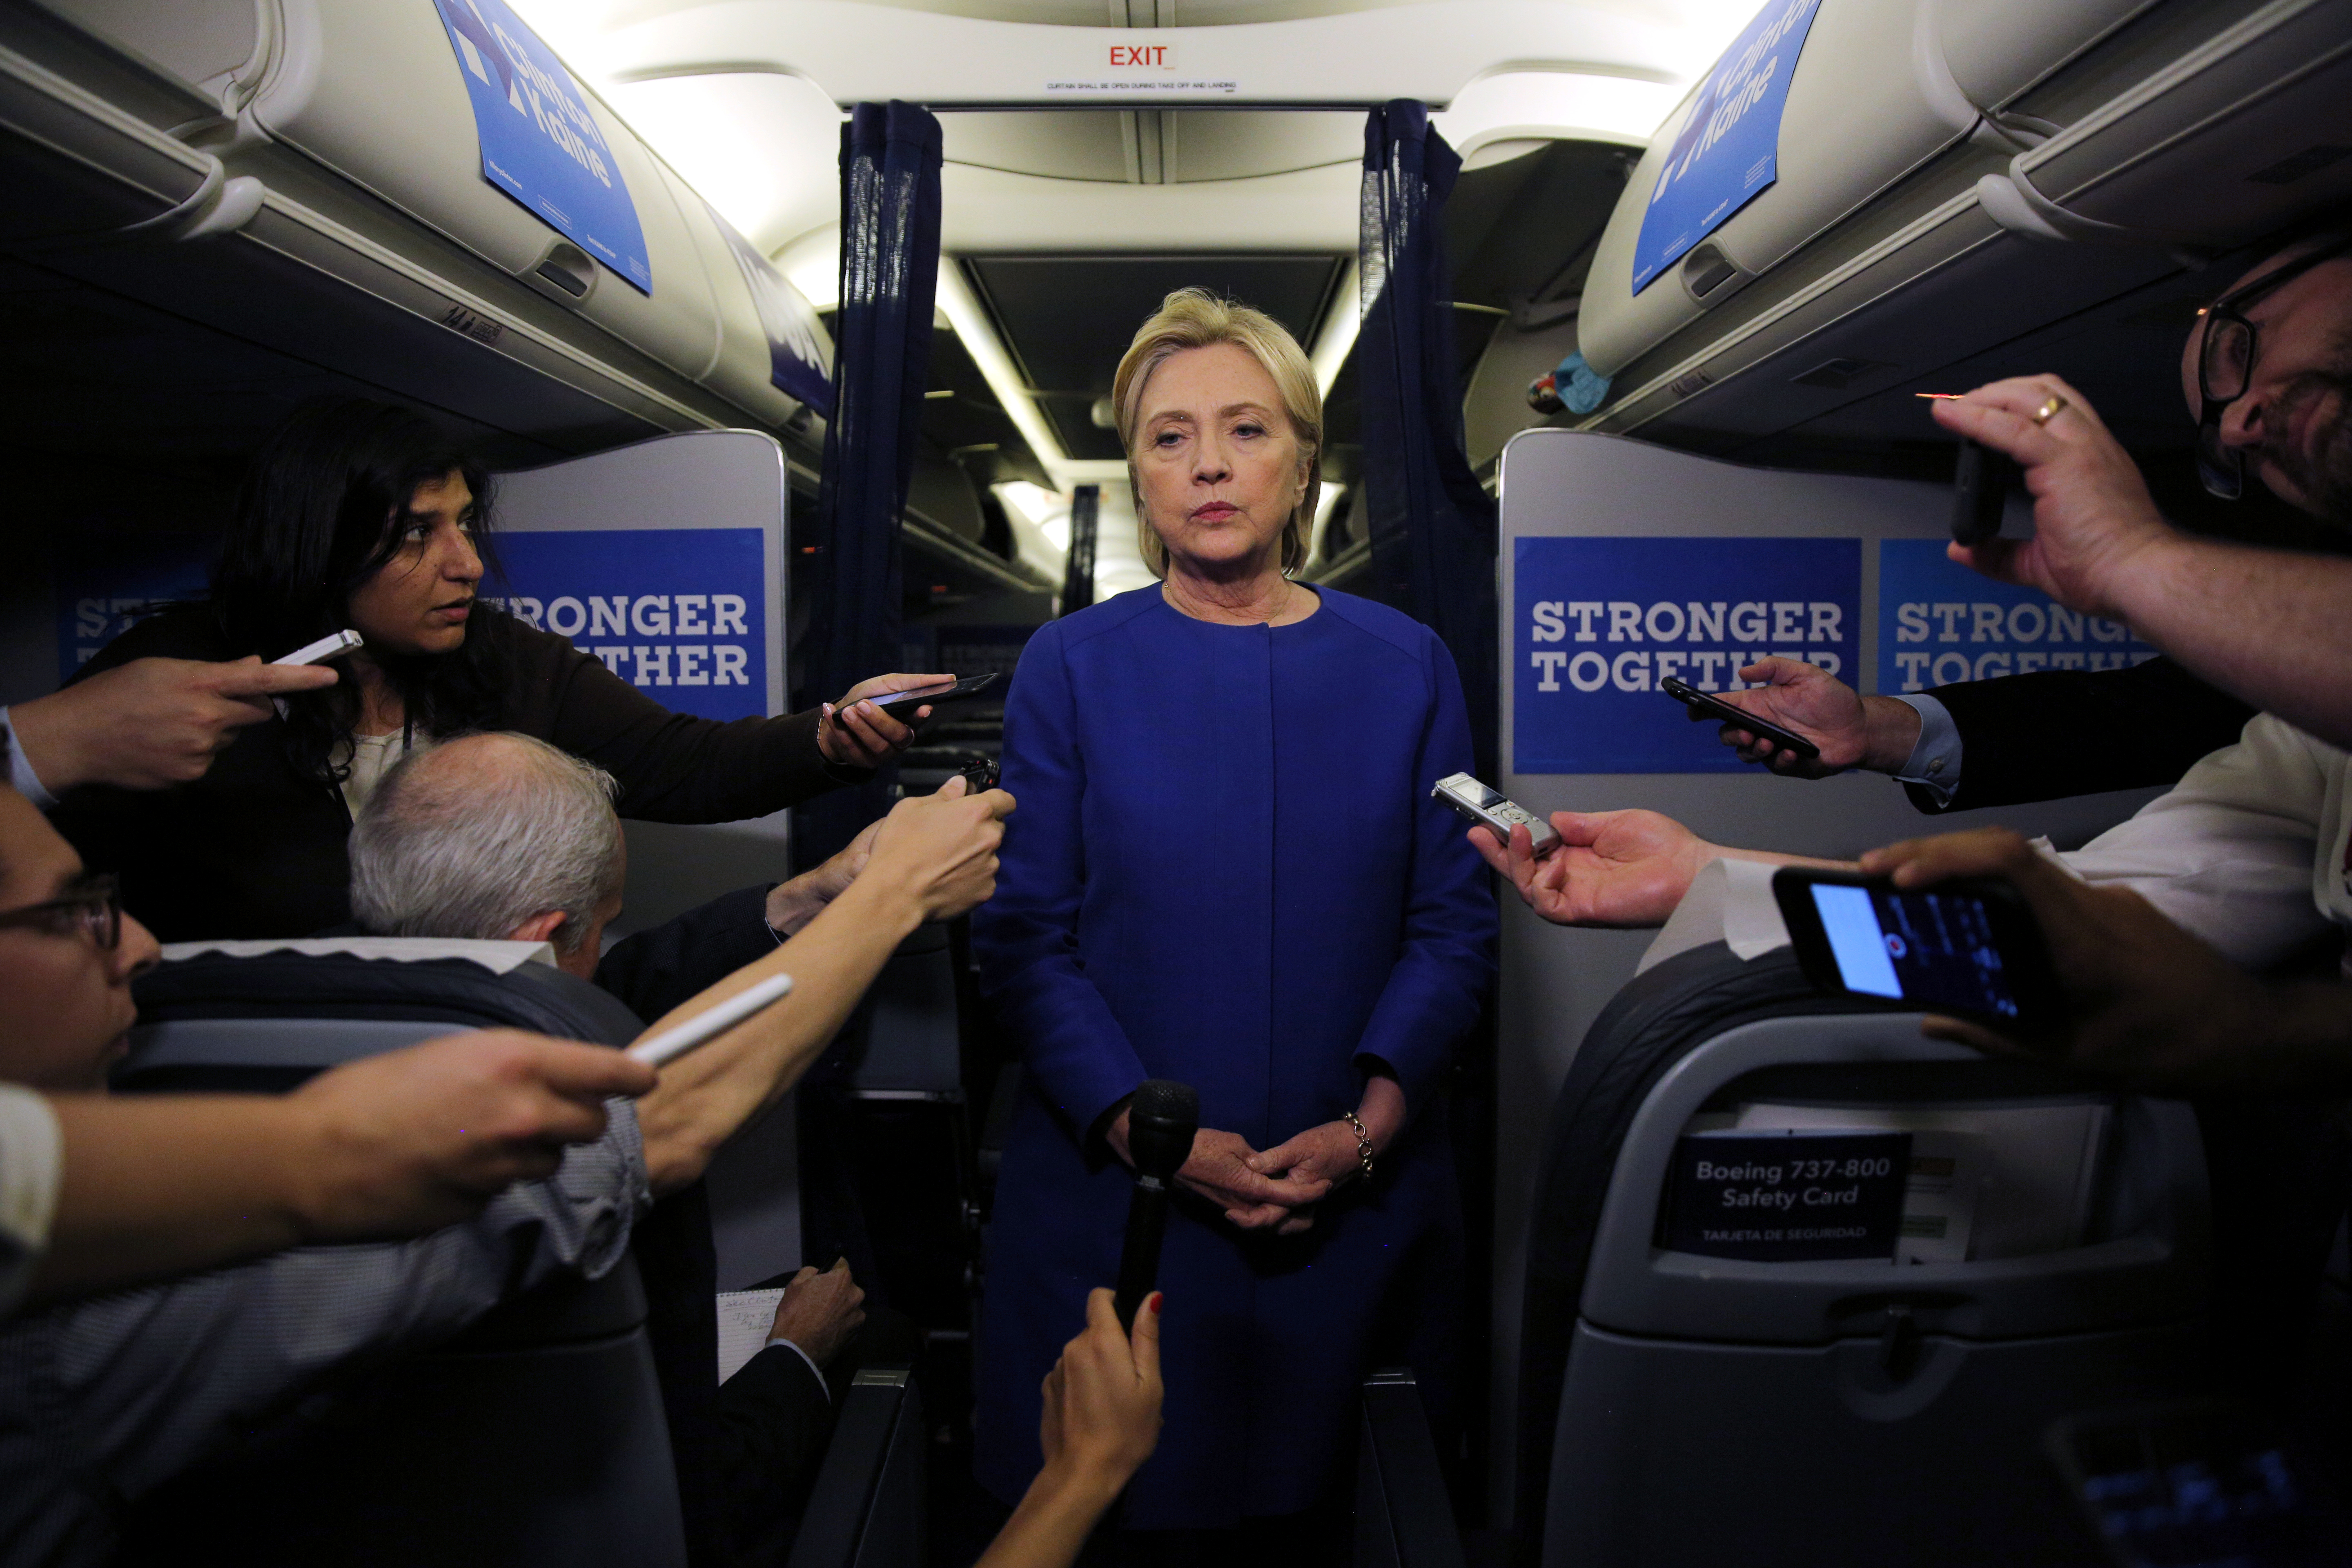 Democratic nominee Hillary Clinton talks to reporters about the explosion in Chelsea neighborhood of Manhattan, New York, as she arrives at the Westchester County airport in White Plains, on Sept. 17, 2016.